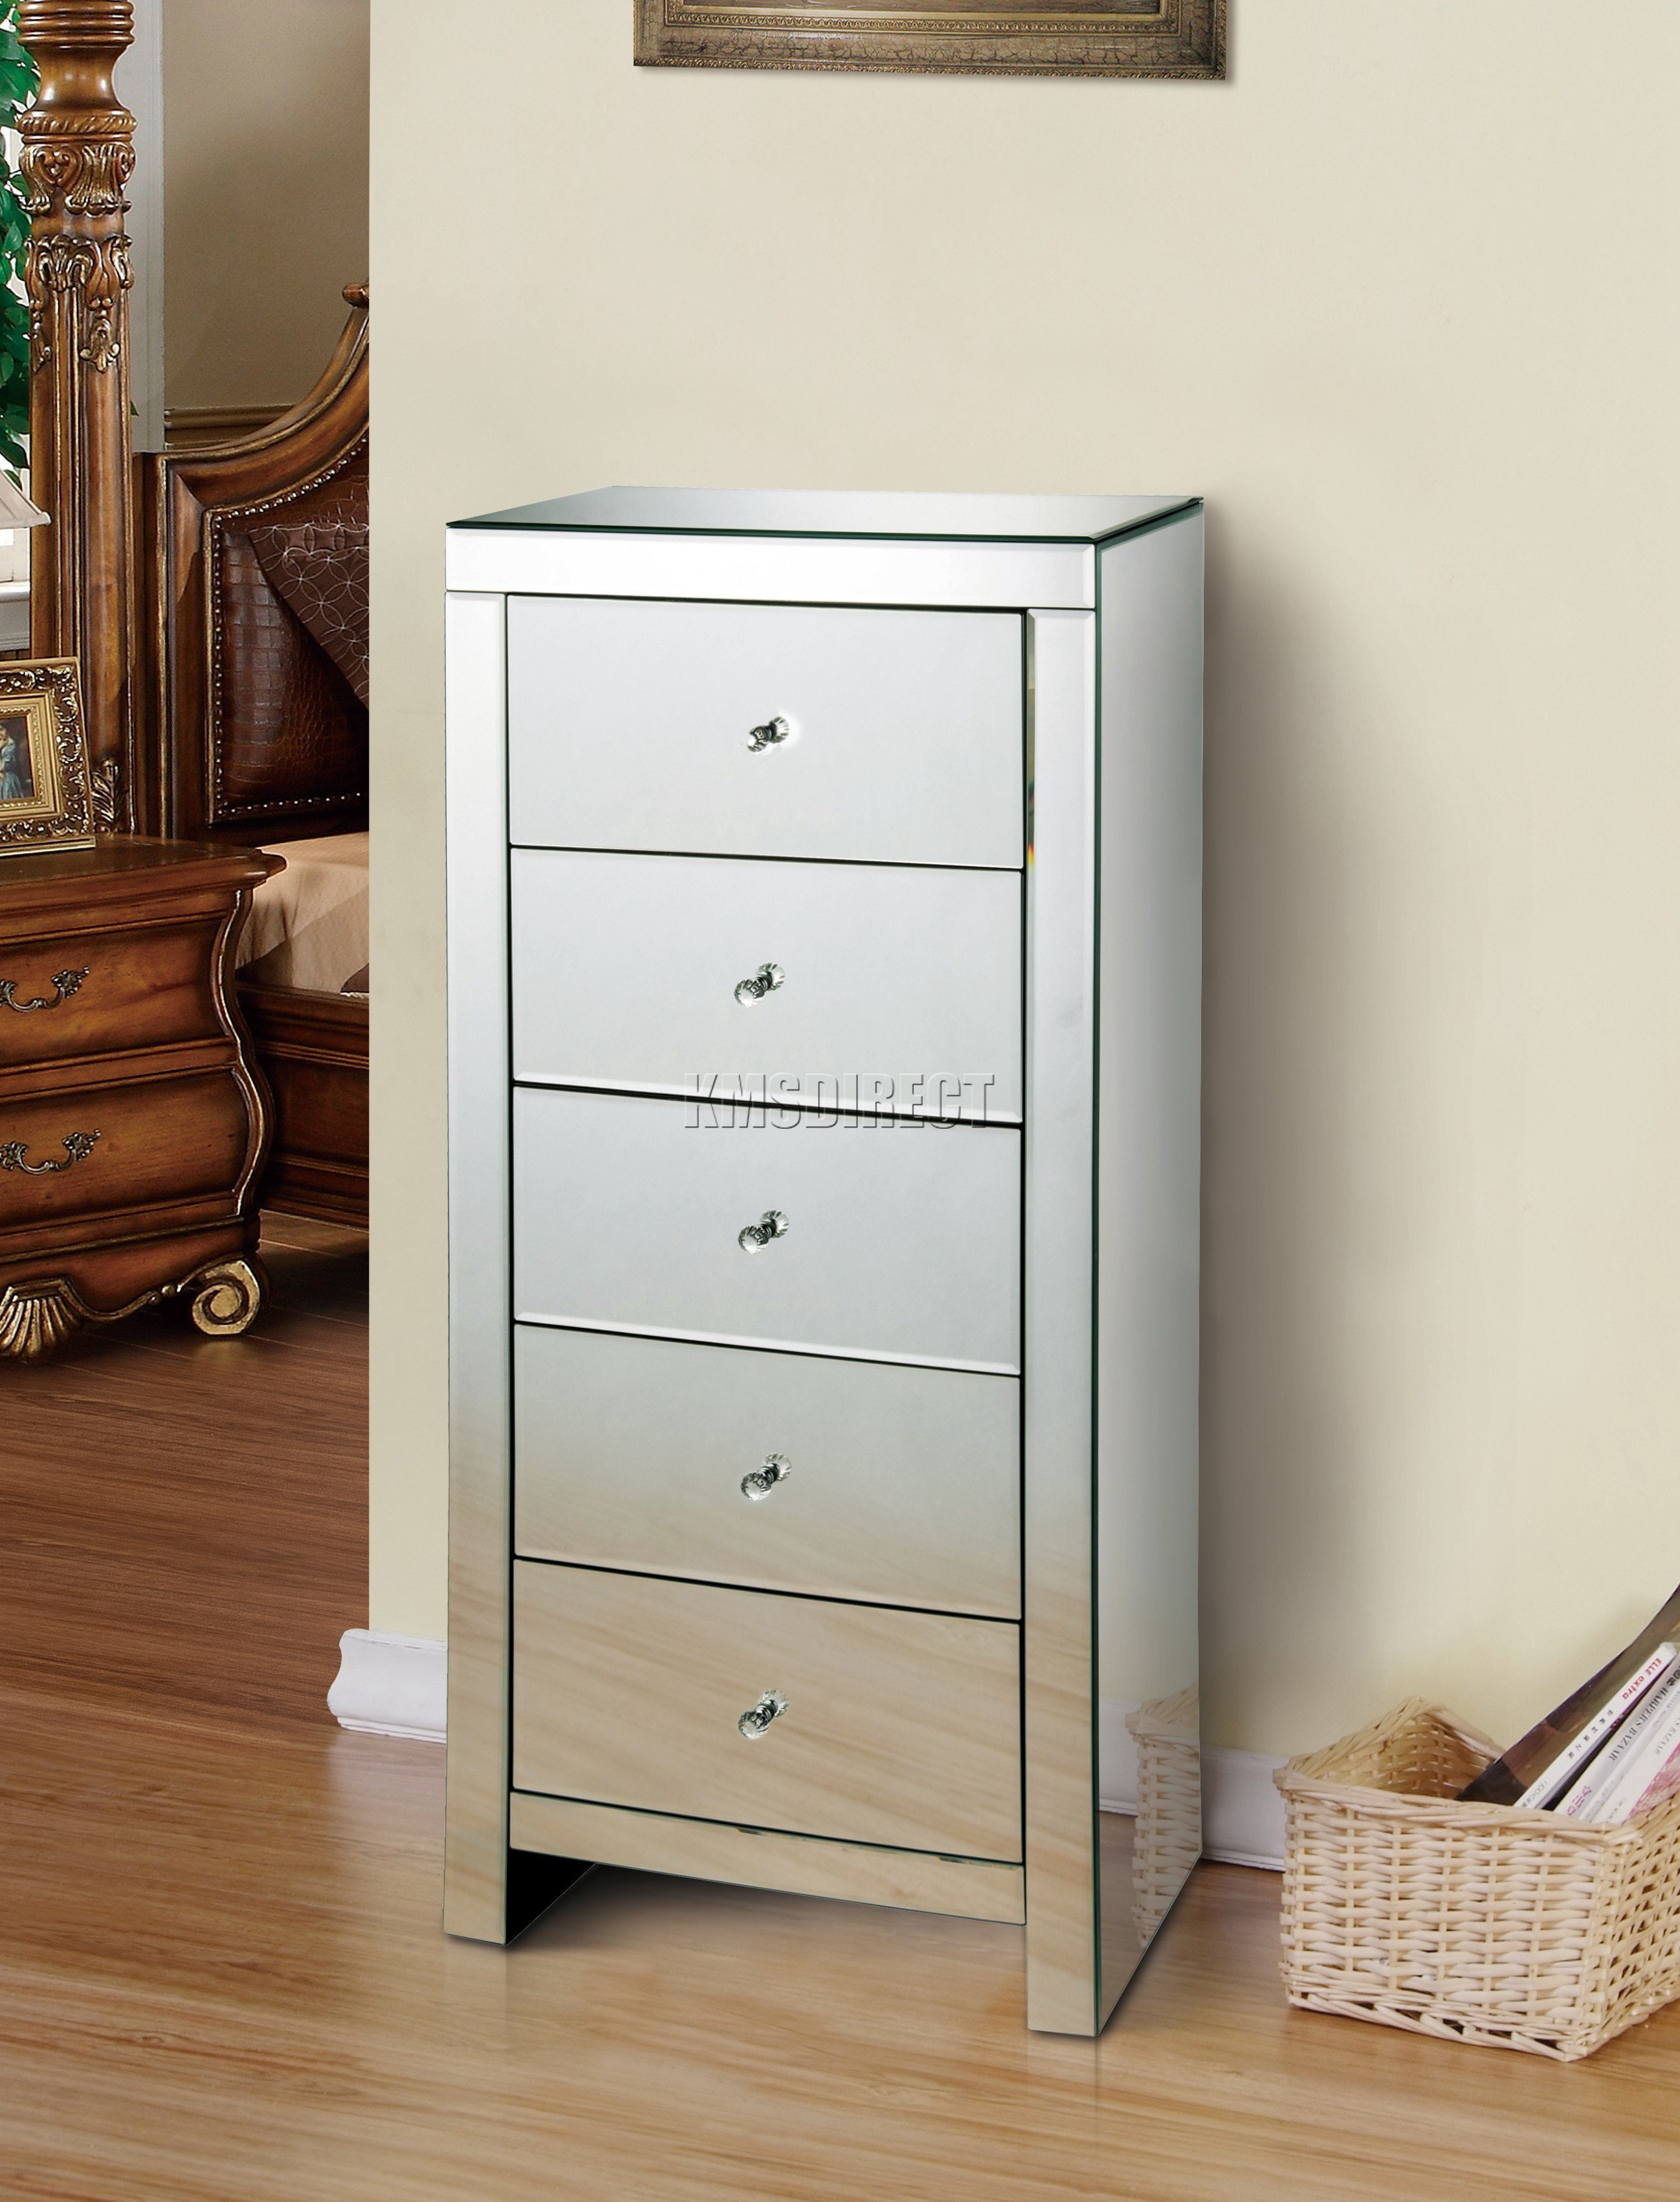 Best Foxhunter Mirrored Furniture Glass 5 Drawer Tallboy Chest Cabinet Bedroom Mtc01 Ebay With Pictures